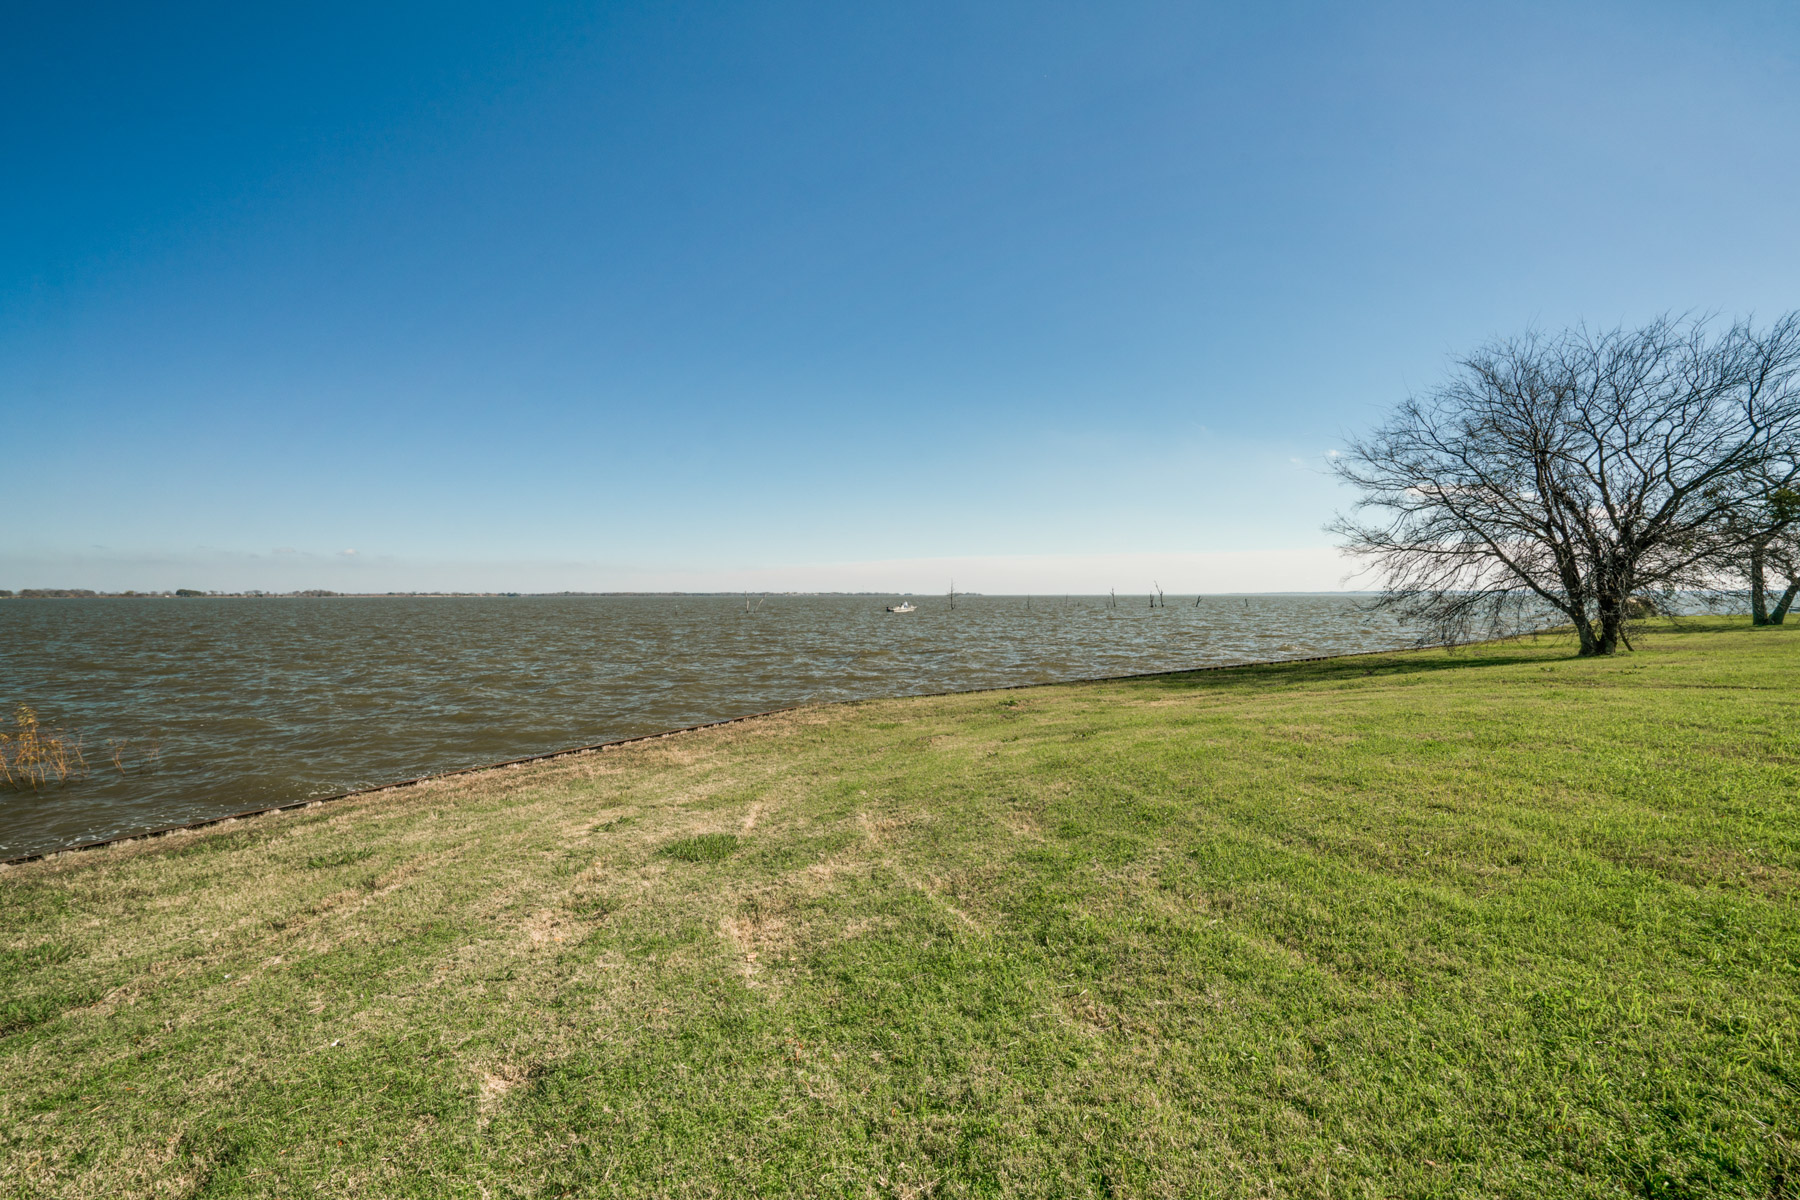 Land for Sale at Stunning Richland-Chambers Reservoir Lot Lot 34 White Rock Road, Corsicana, Texas 75109 United States